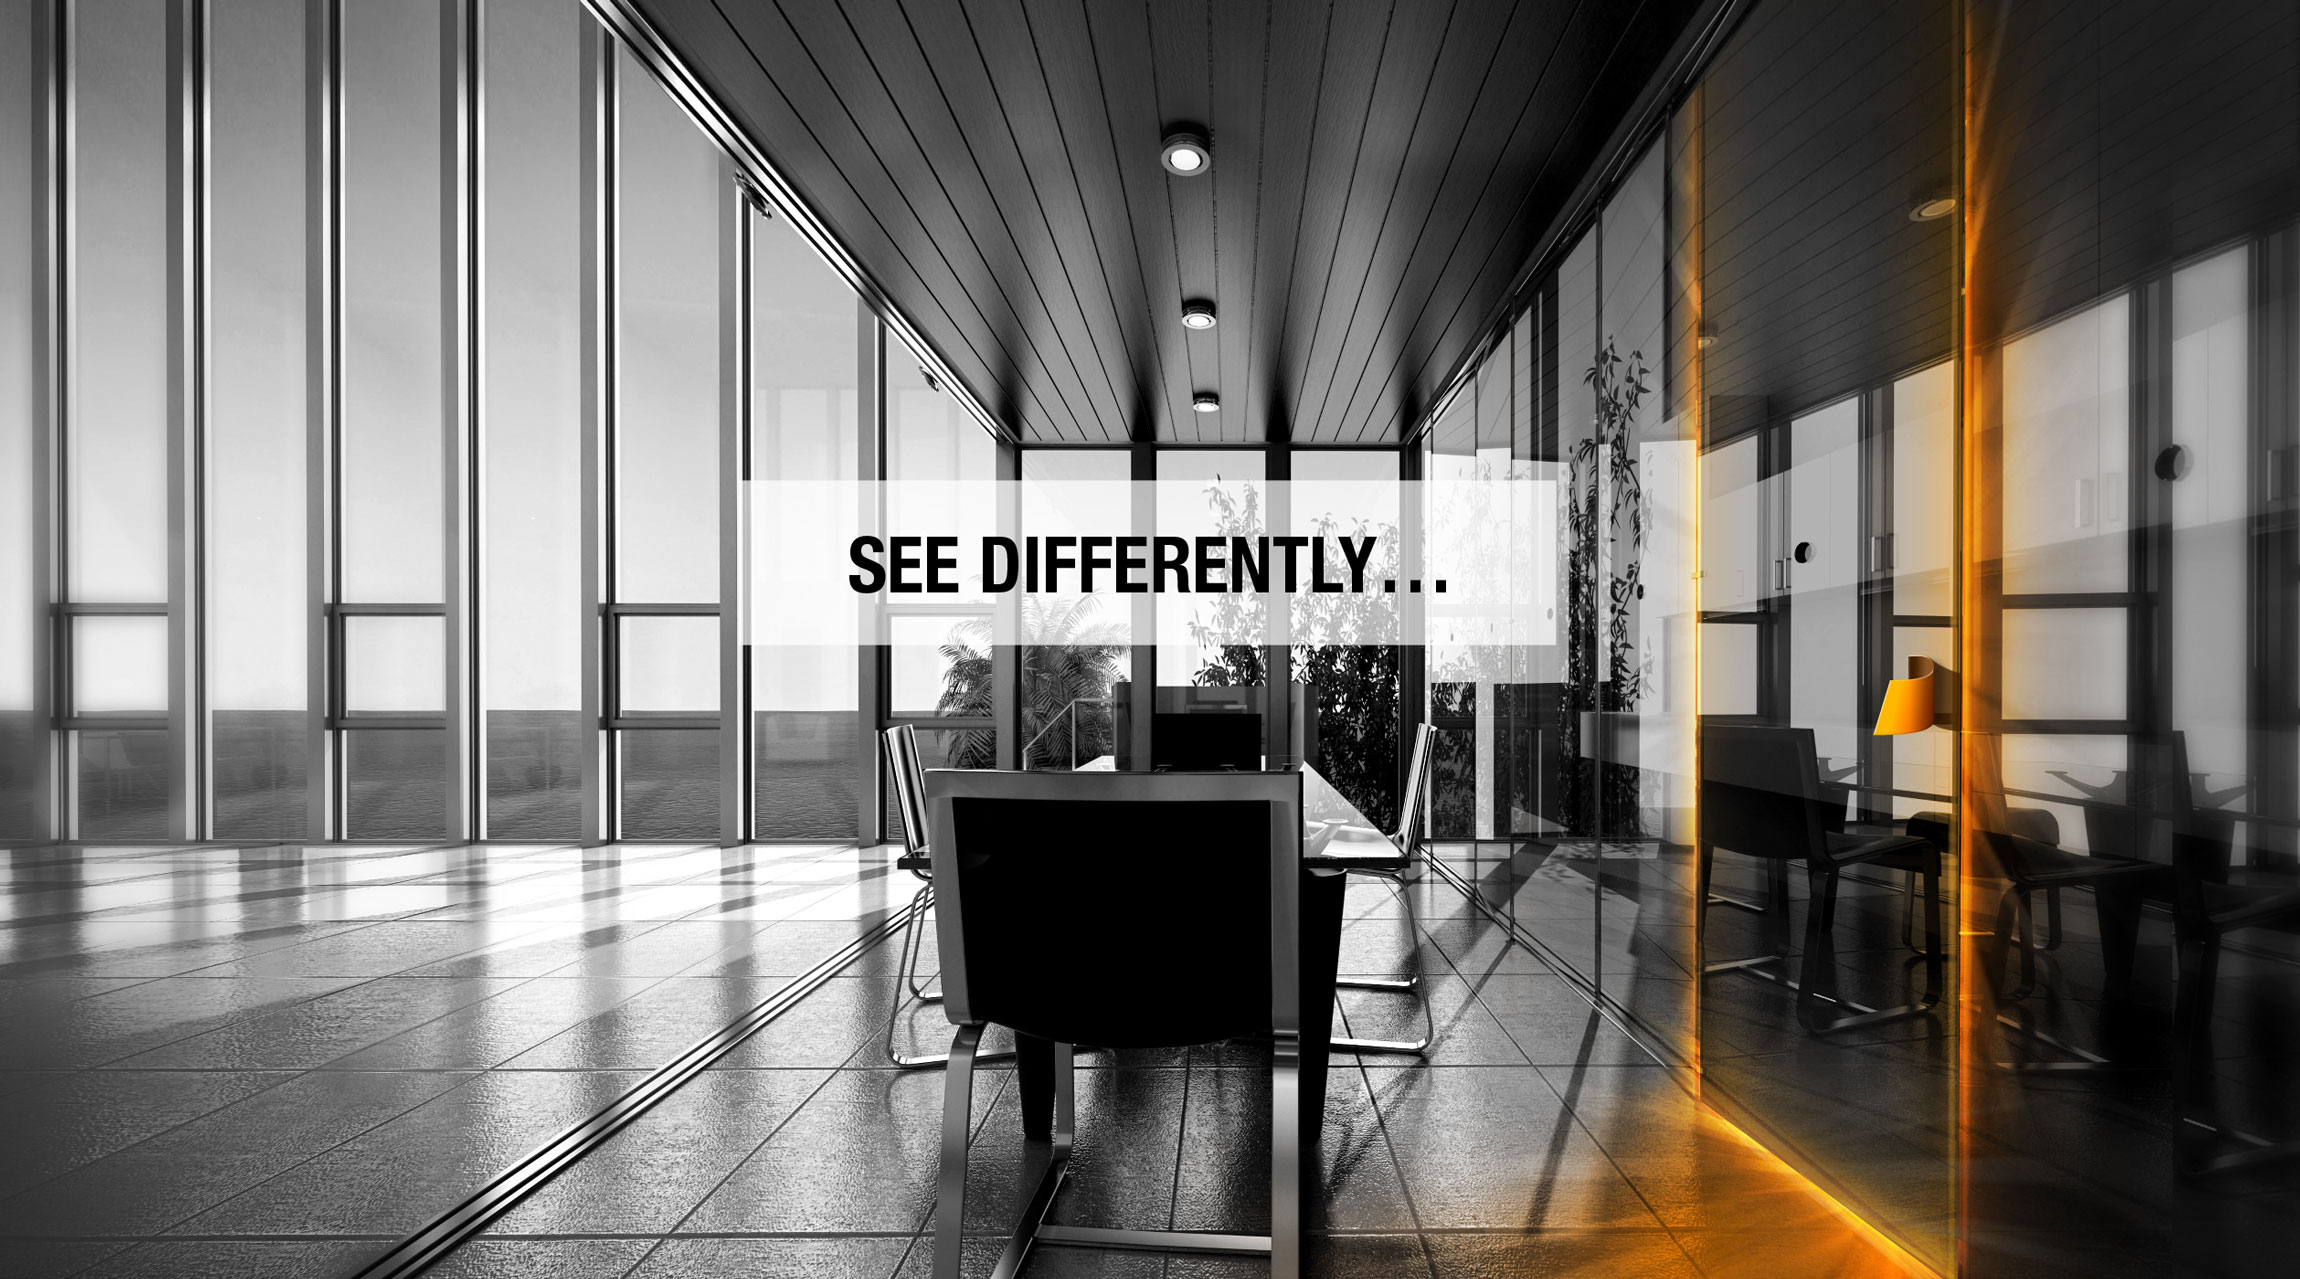 see-differently